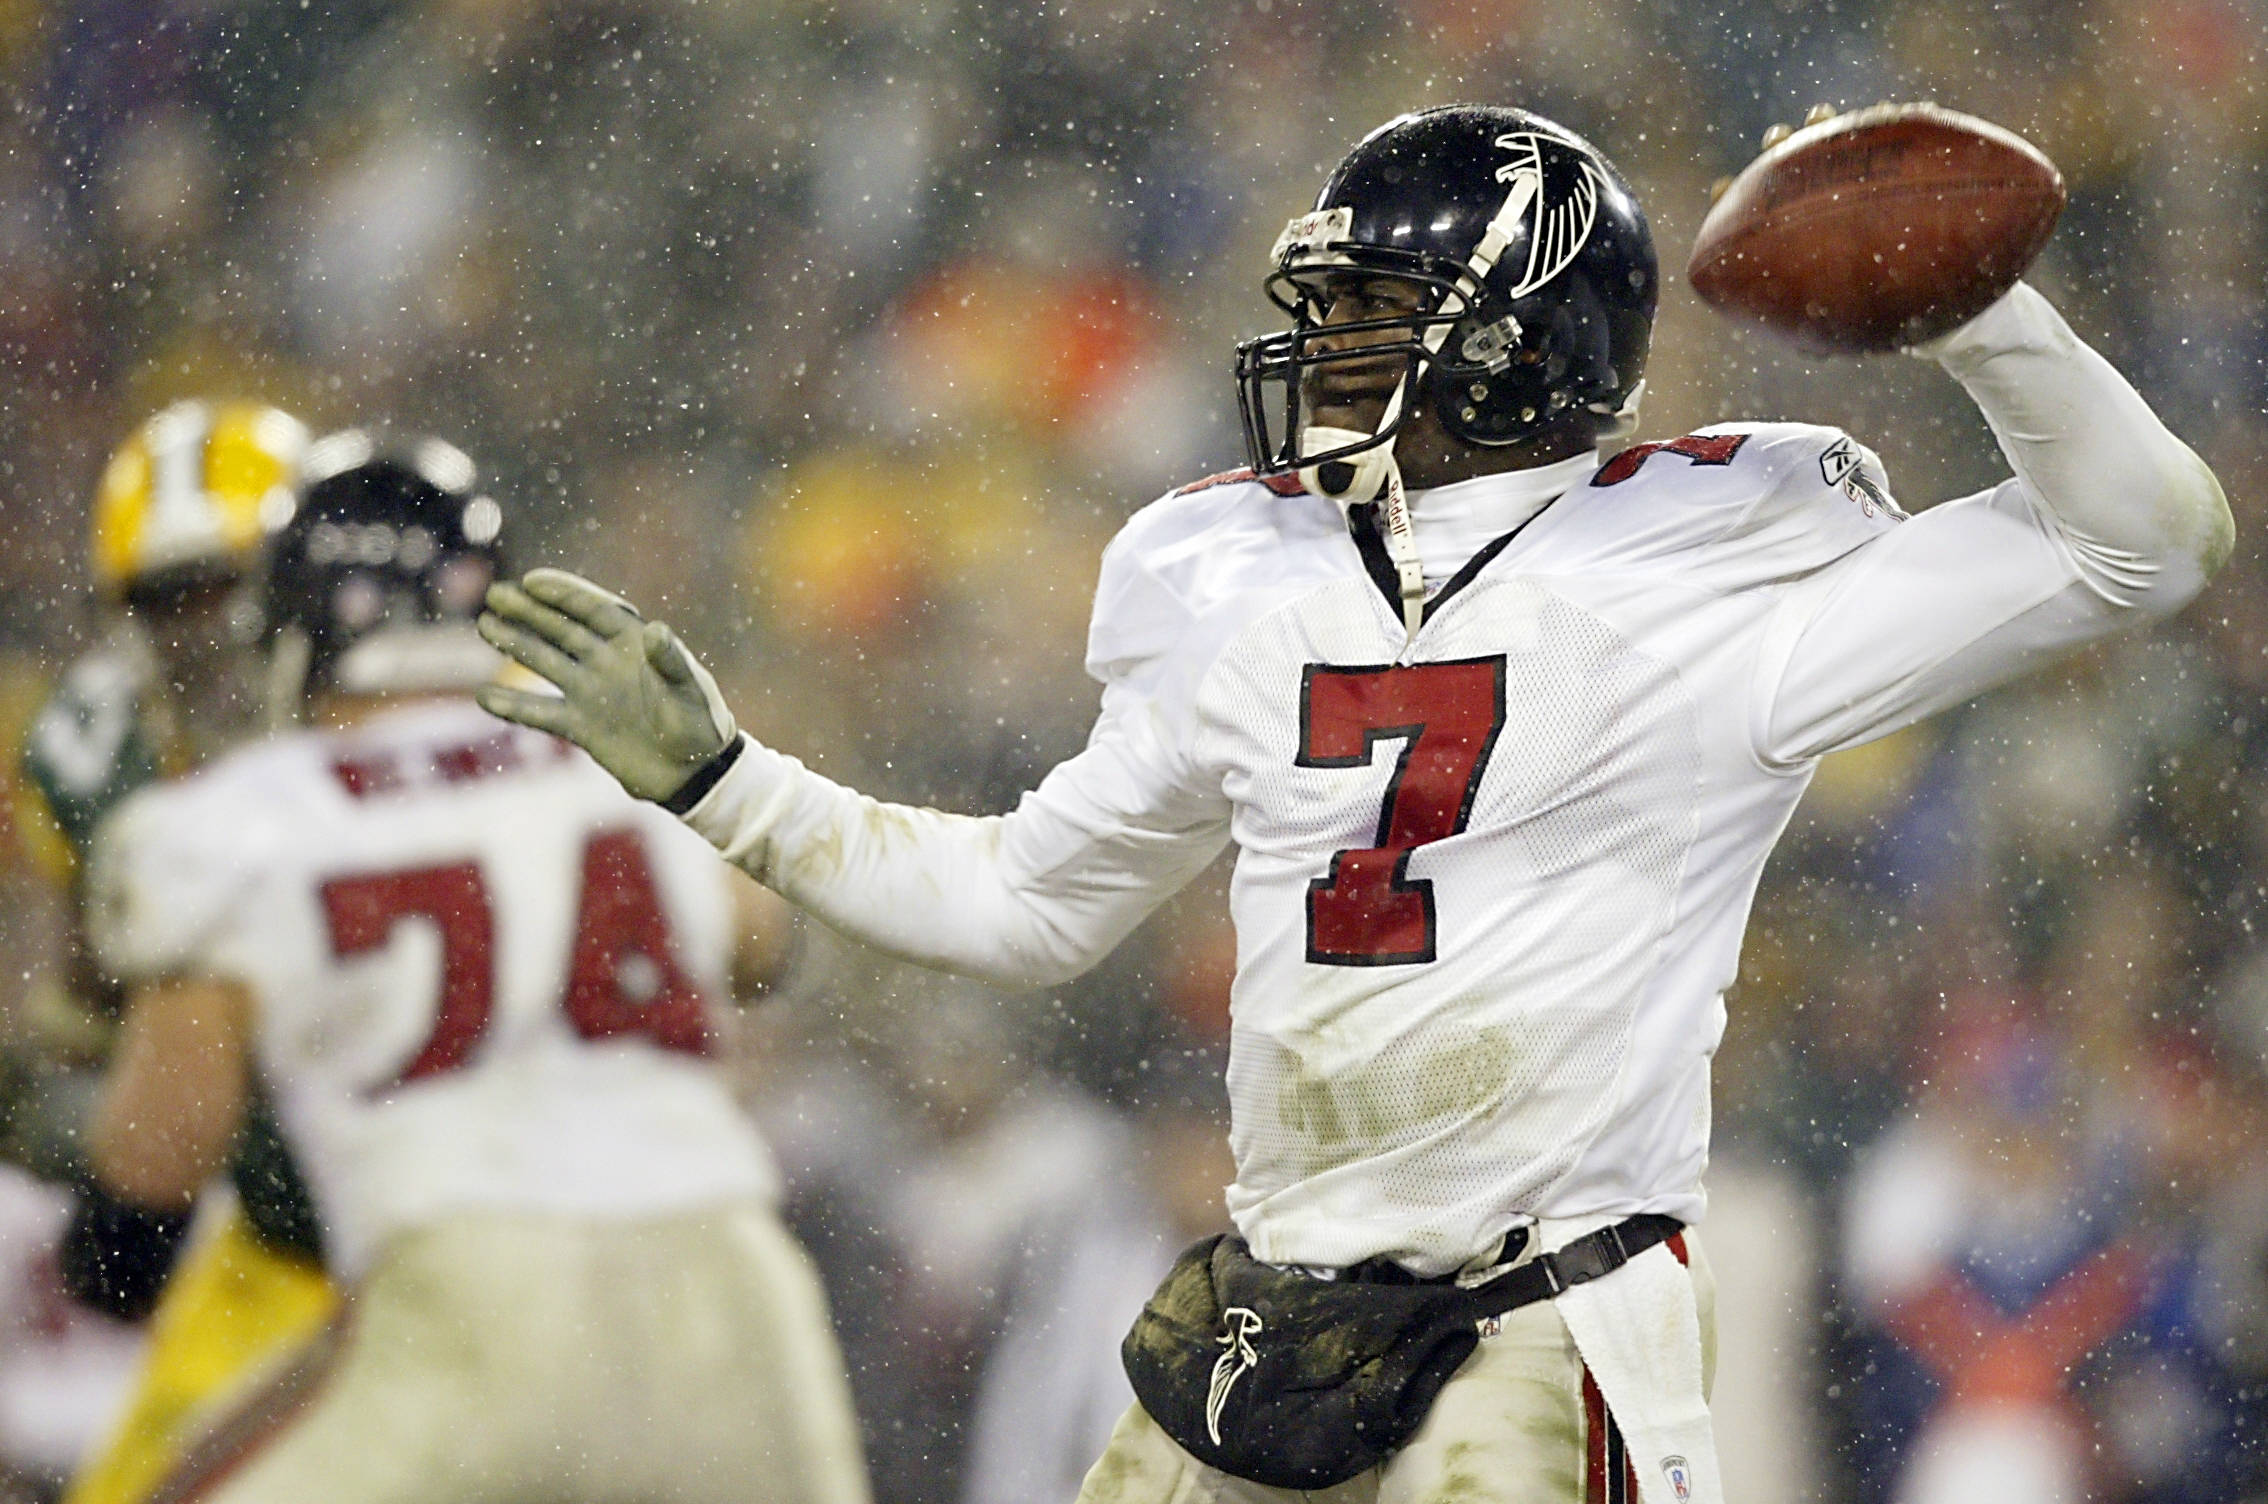 Michael Vick Believes He Should Be In The Hall Of Fame